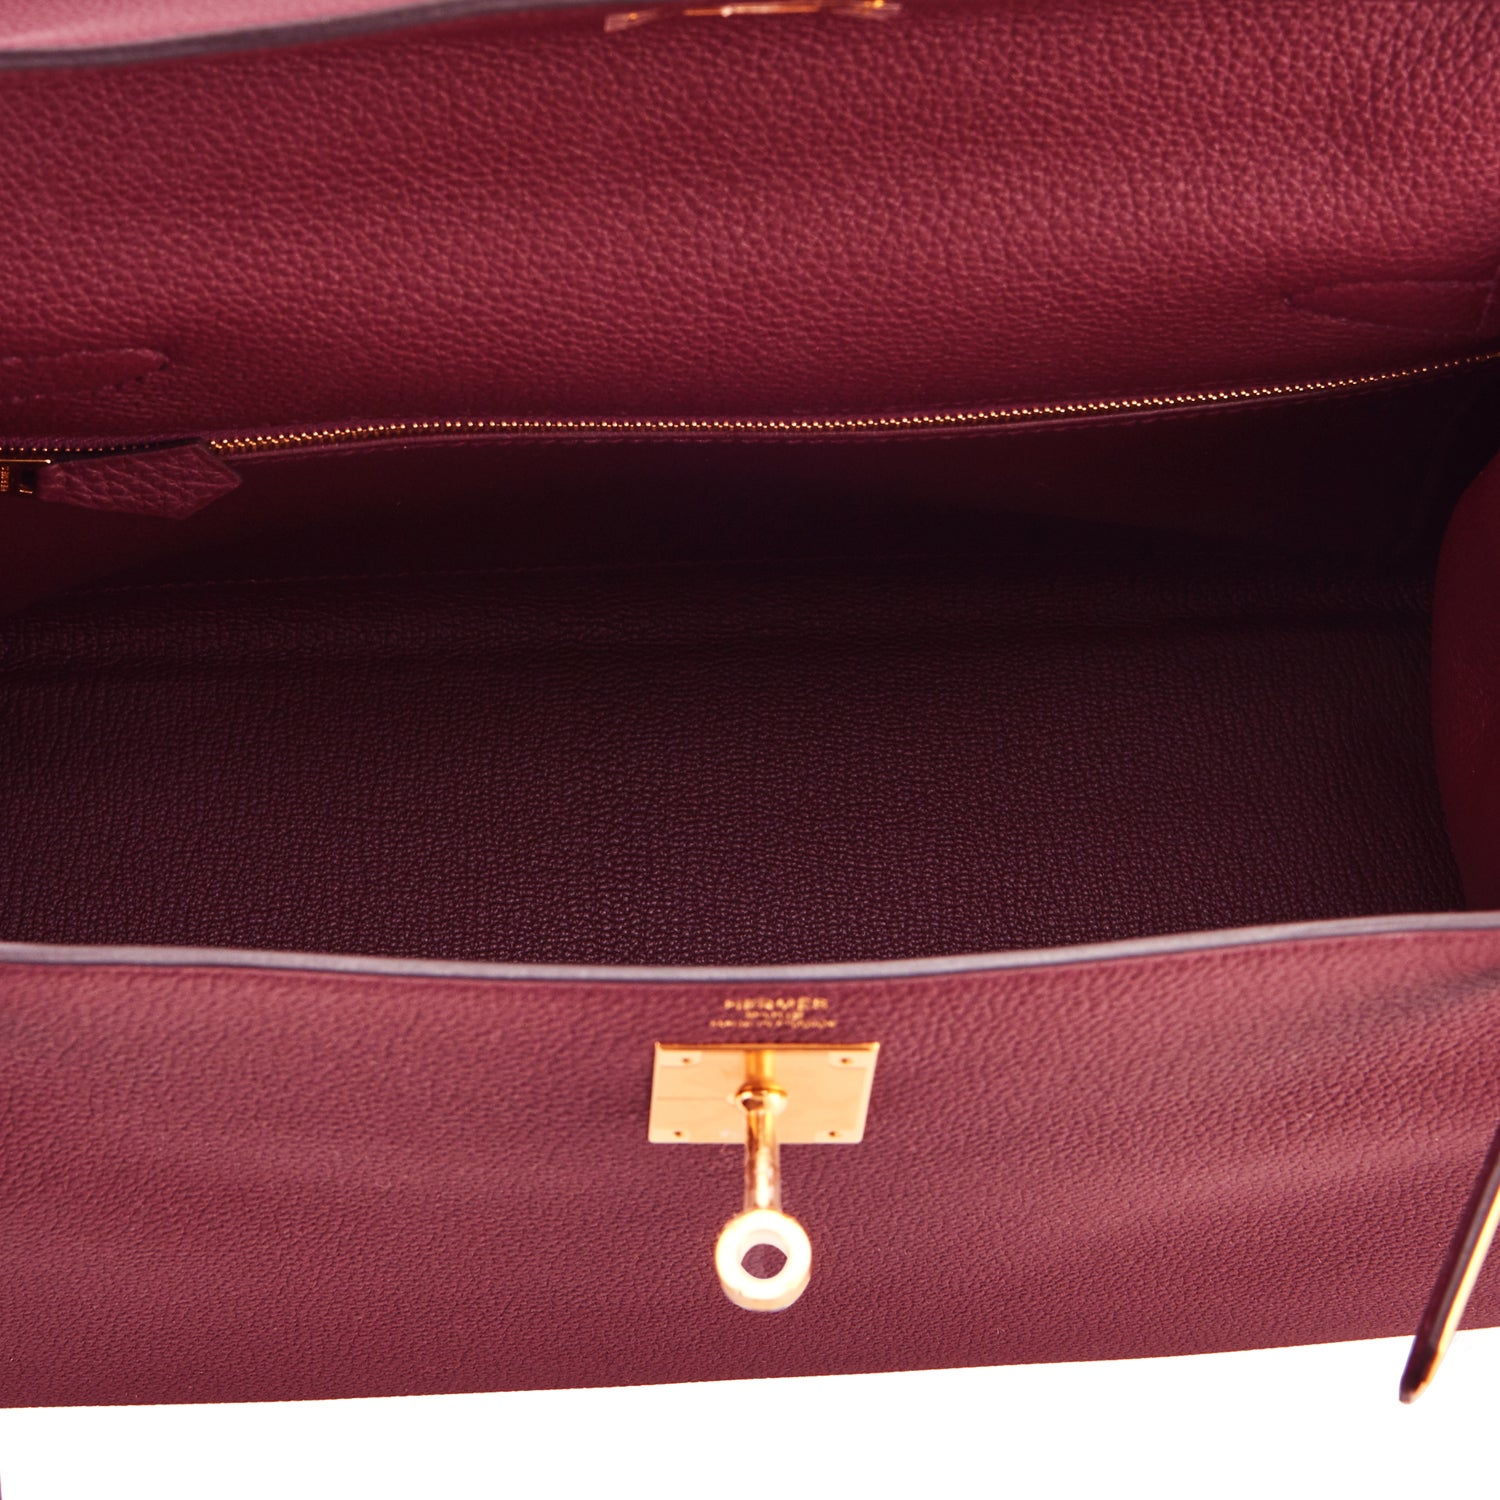 721f376b3 Hermes Bordeaux 28cm Kelly Togo Gold Hardware Red Exquisite at 1stdibs